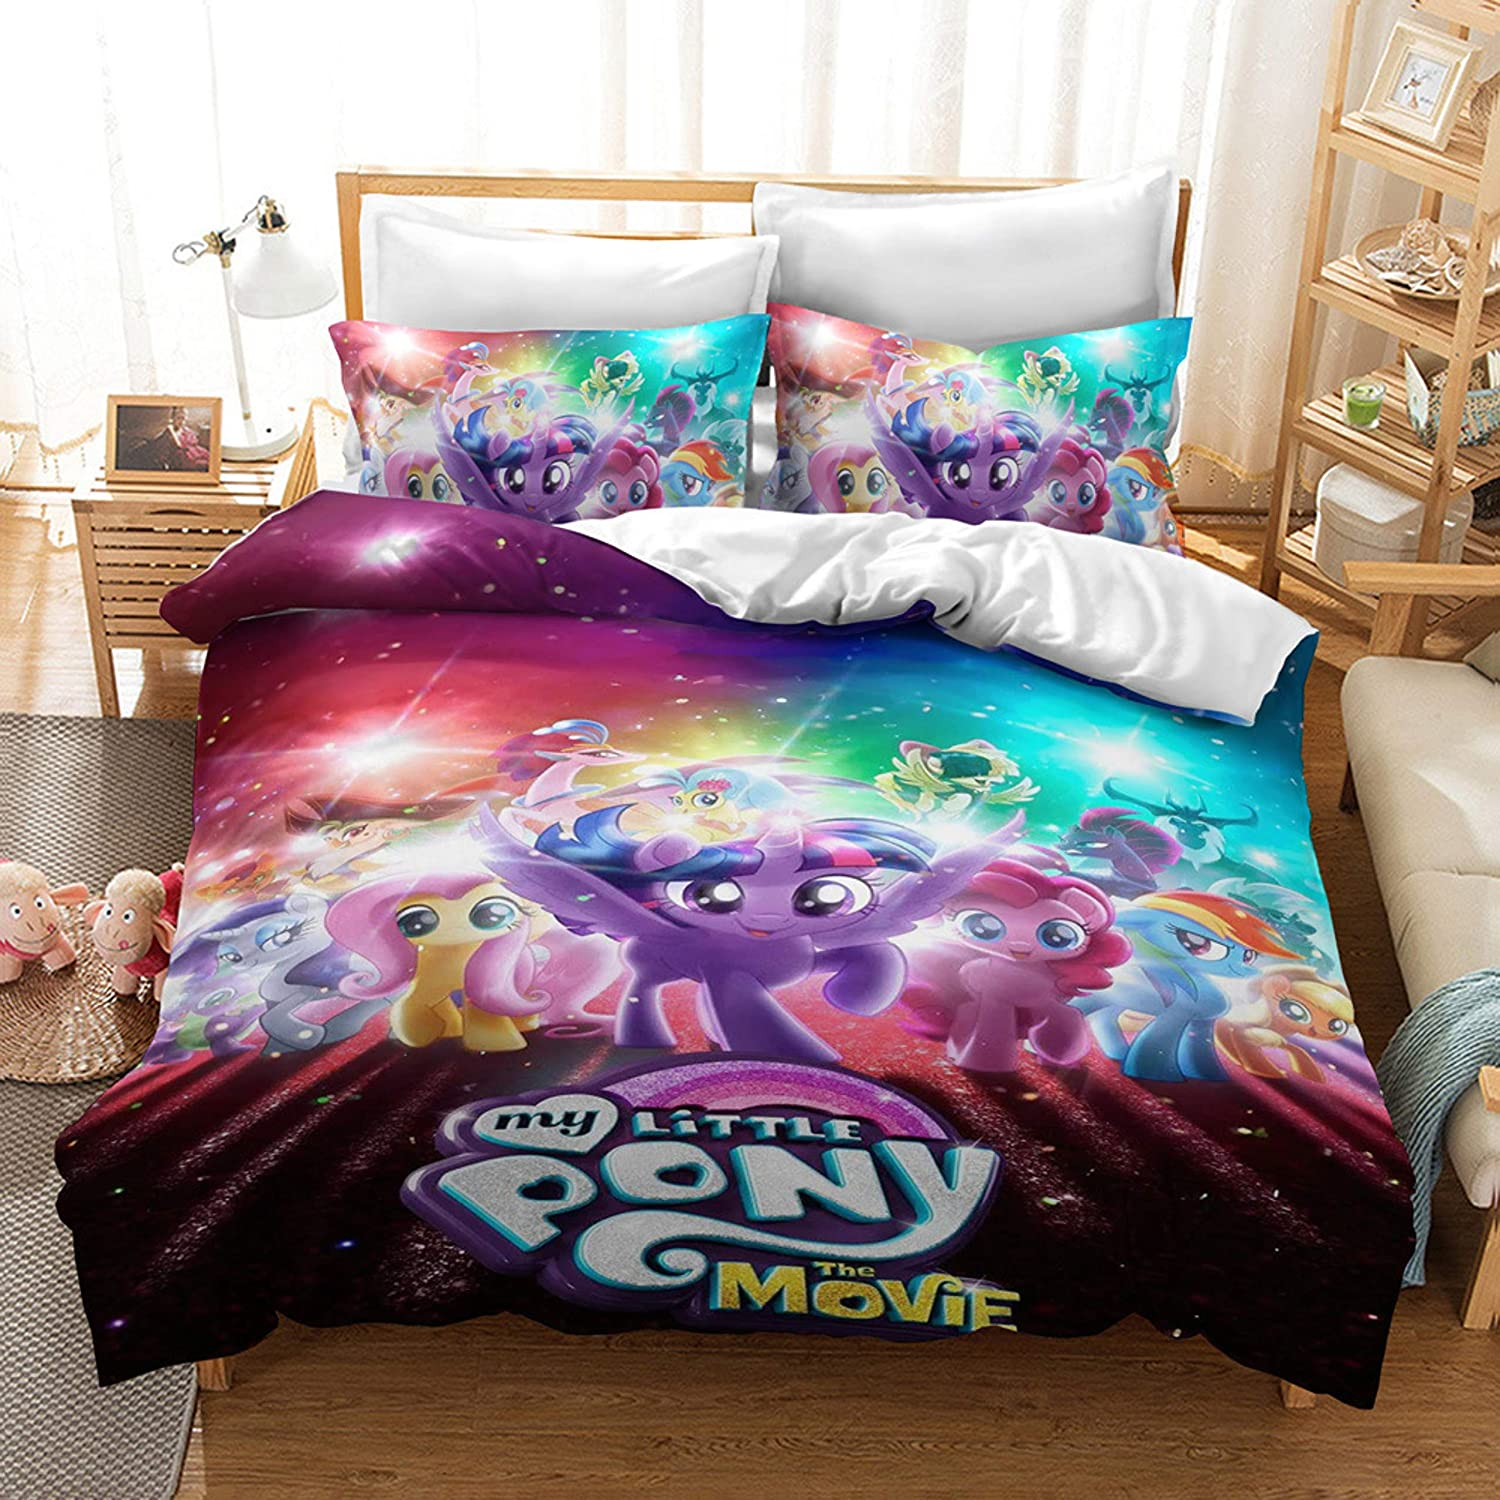 Cheap super special price Ntioyg Reversible Printing My Liltte Pony Cover Sets Milwaukee Mall bros Duvet